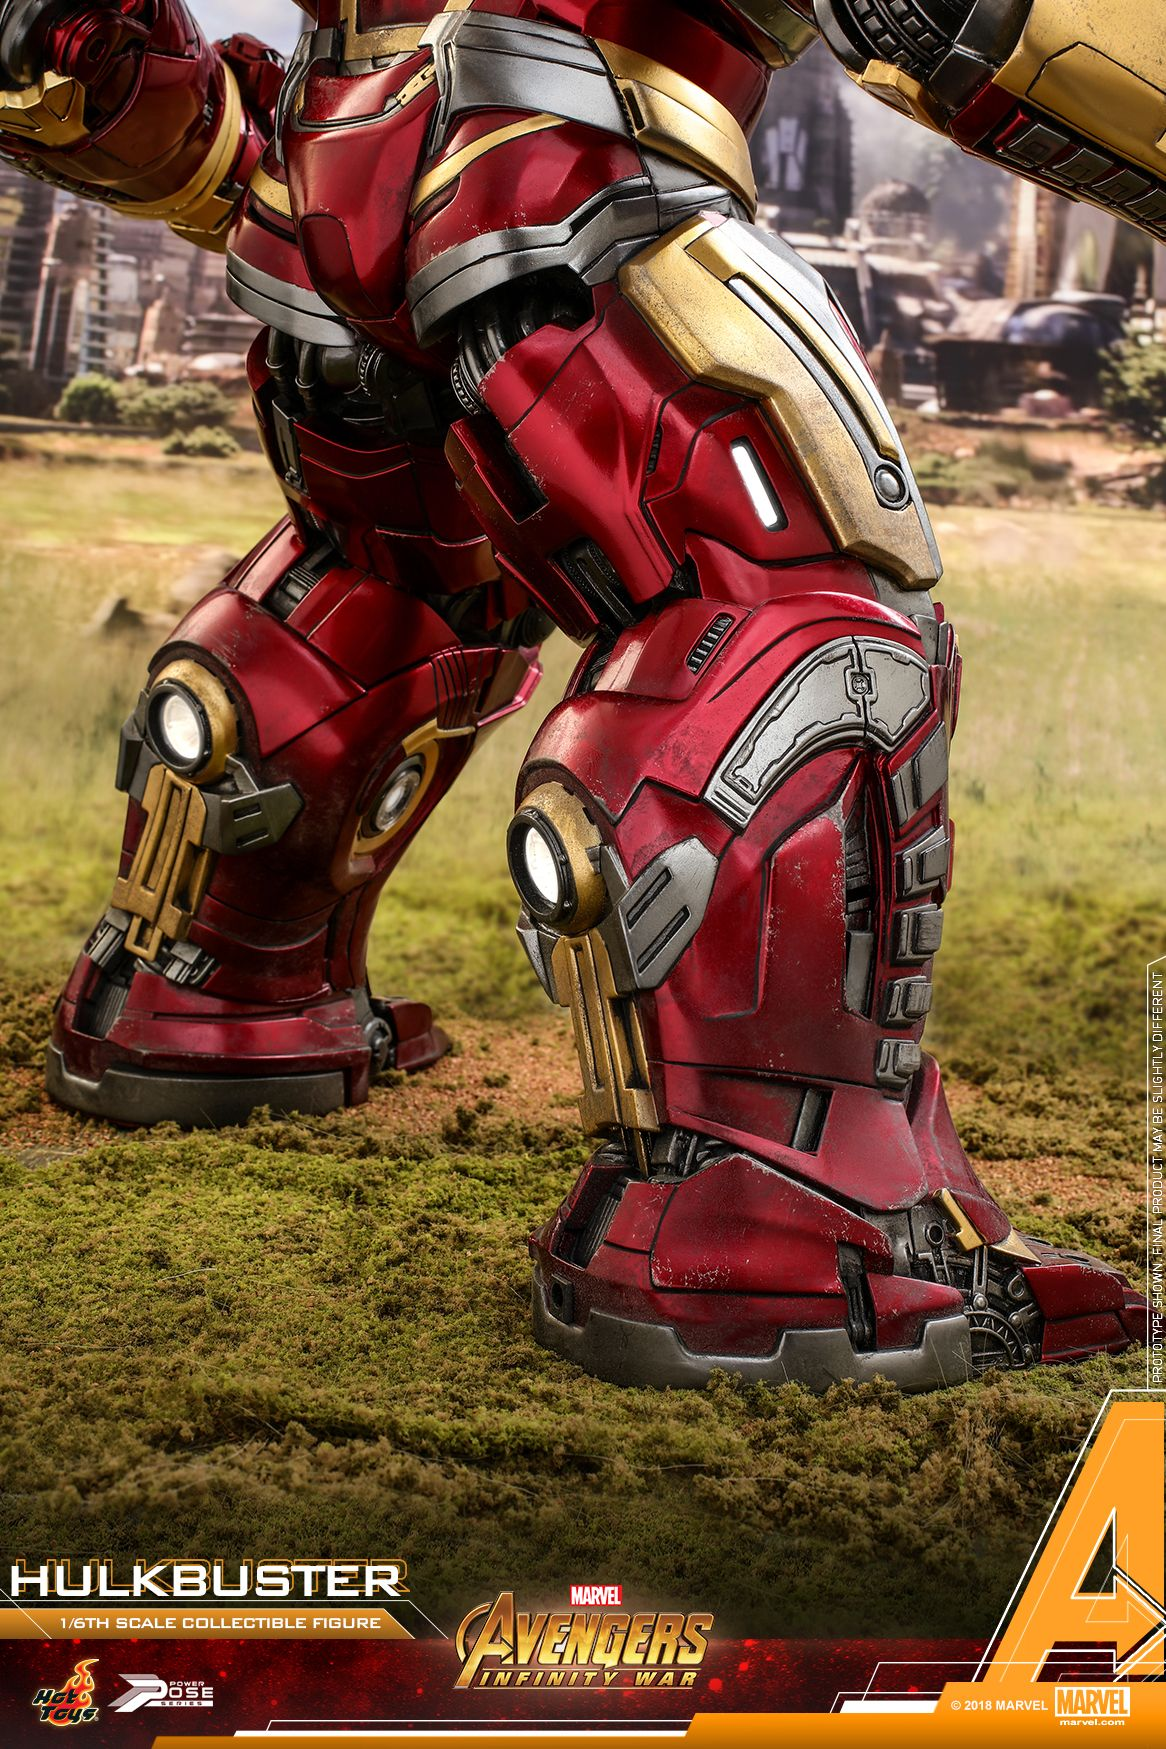 Hulkbuster Hot Toy